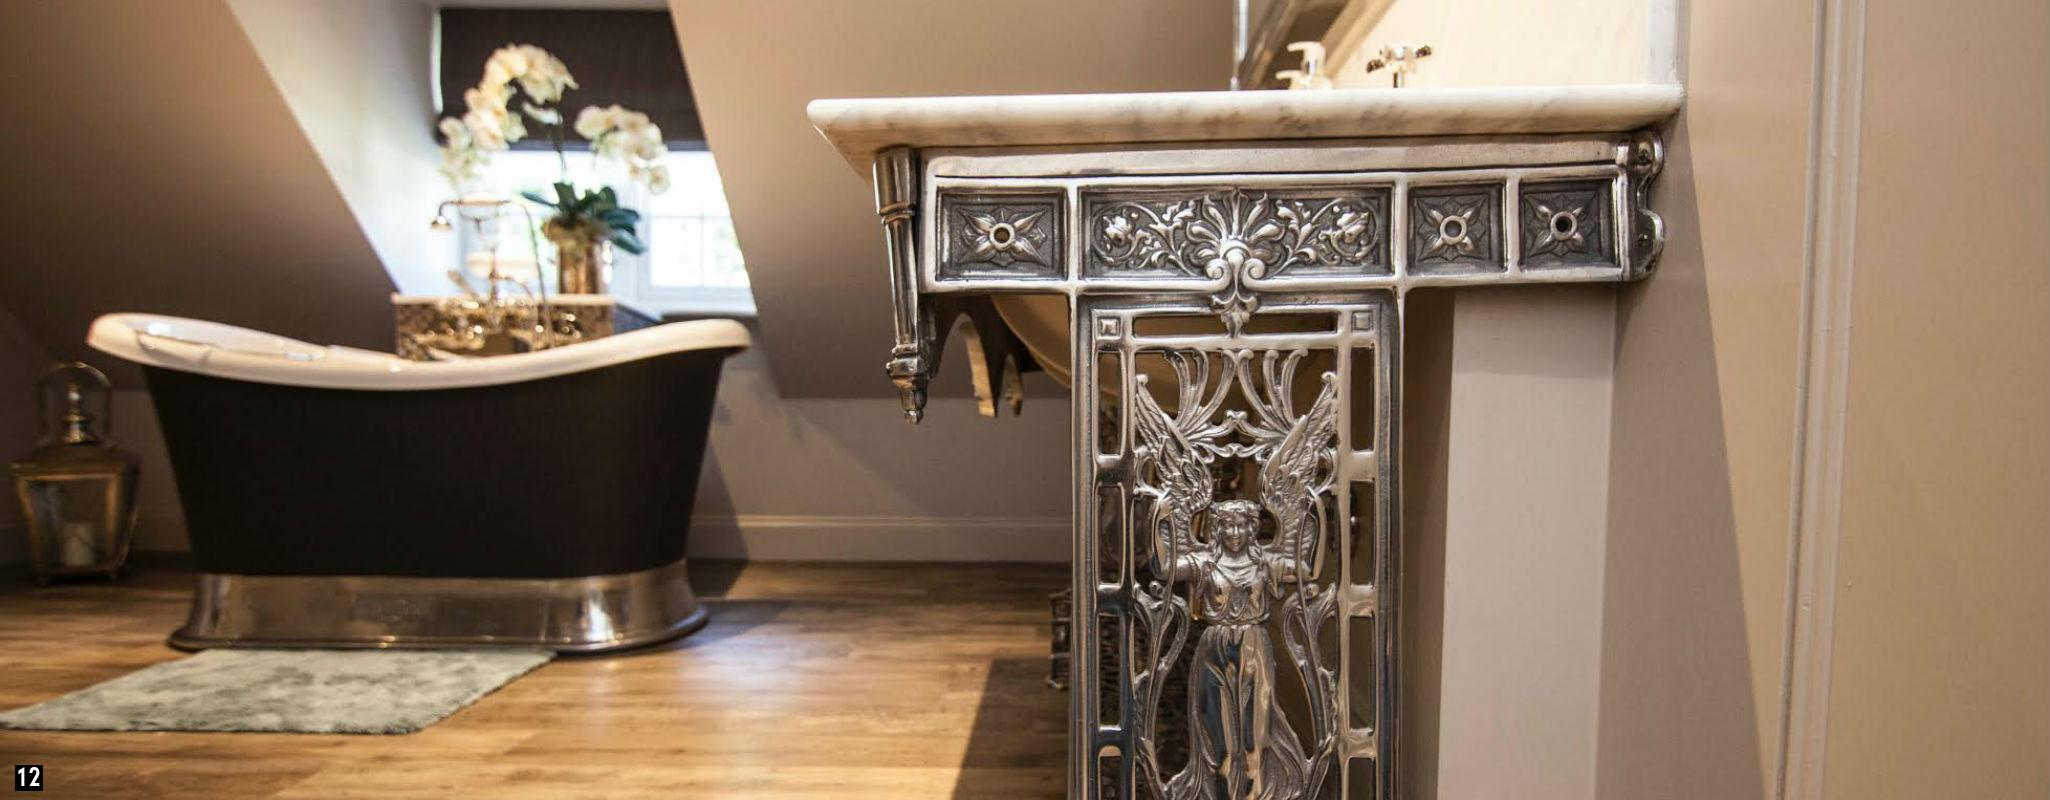 Bespoke Powder Rooms and Bespoke Cloakrooms, Victorian Cloakrooms and Toilets